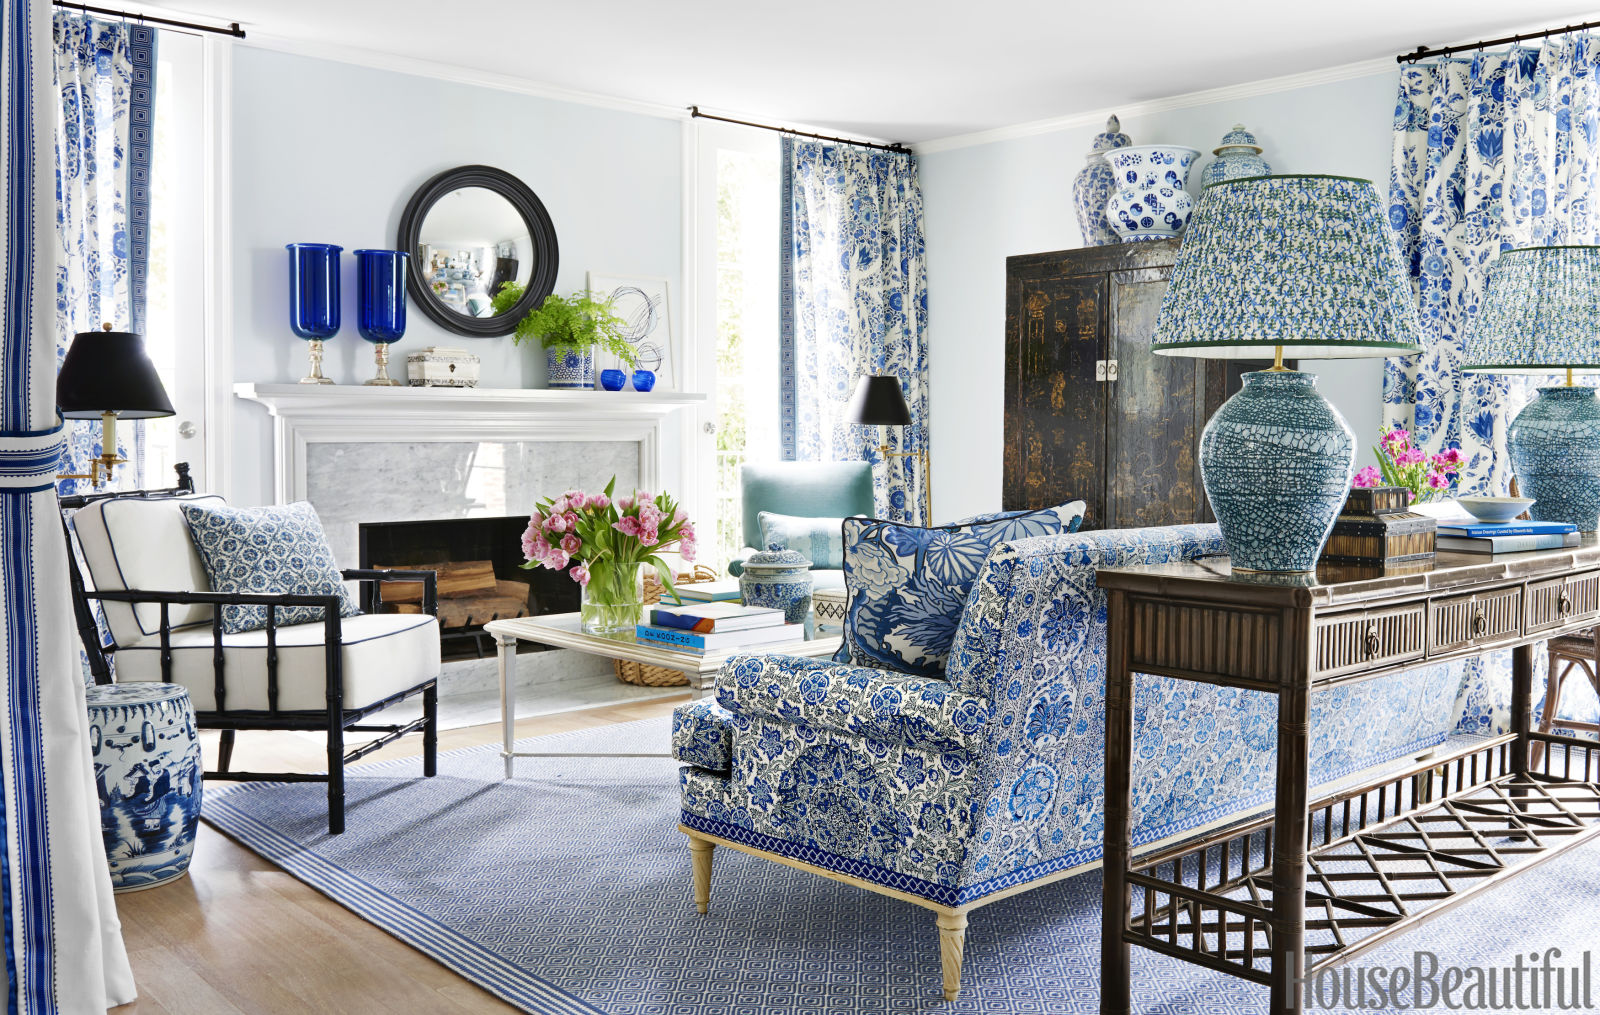 Mark d sikes interior design blue and white house tour - Pictures of interior design living rooms ...